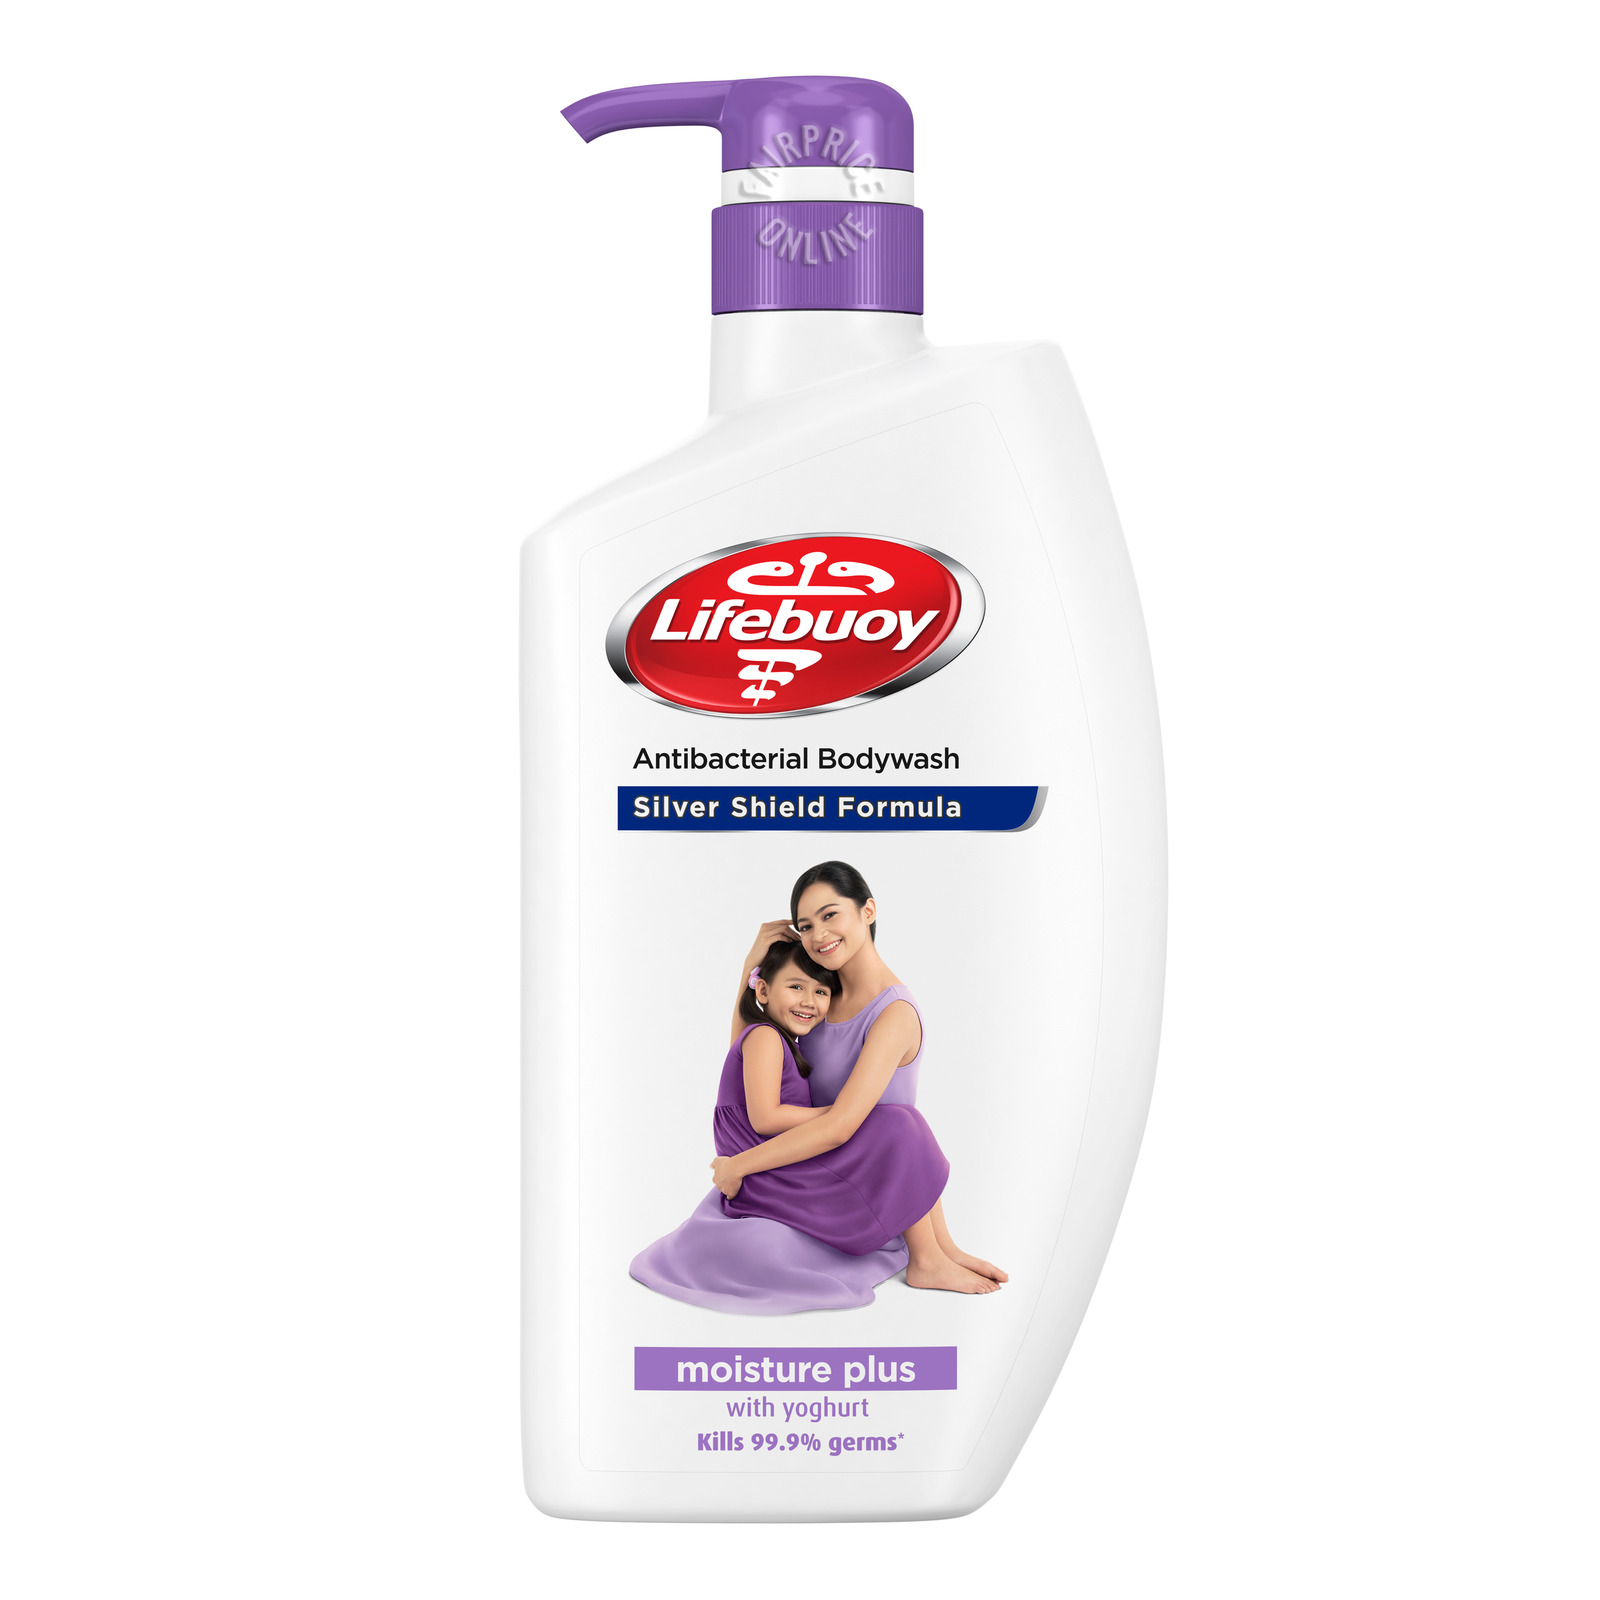 Lifebuoy Antibacterial Body Wash Moisture Plus, 1L